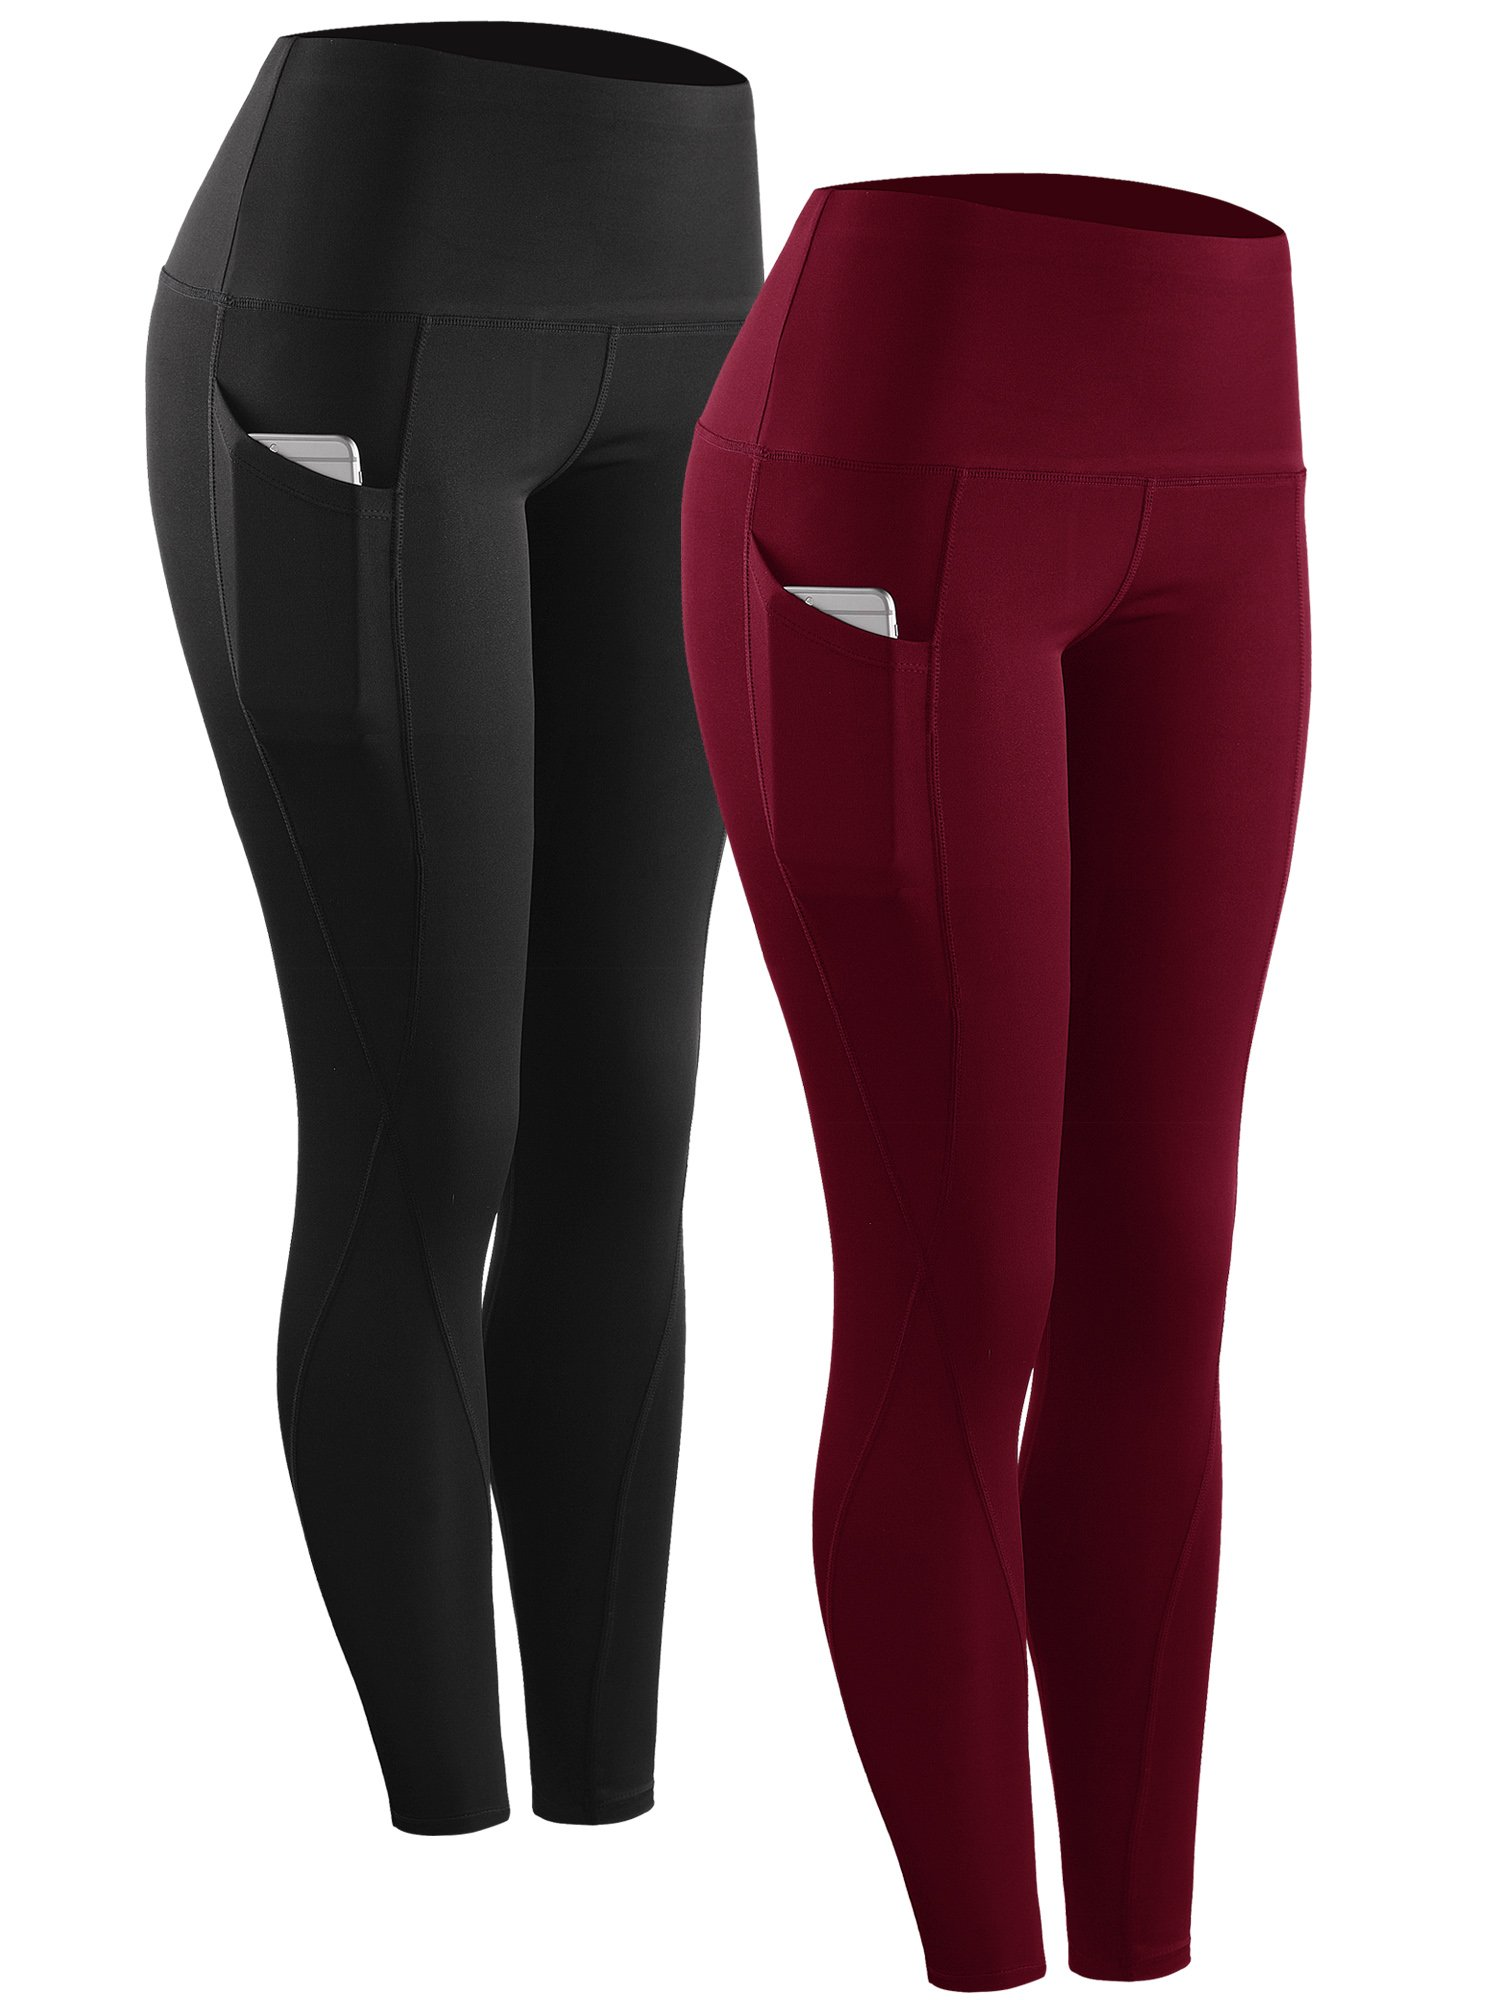 Neleus 2 Pack Tummy Control High Waist Running Workout Leggings,9017,2 Pack,Black,Red,XS,EU S by Neleus